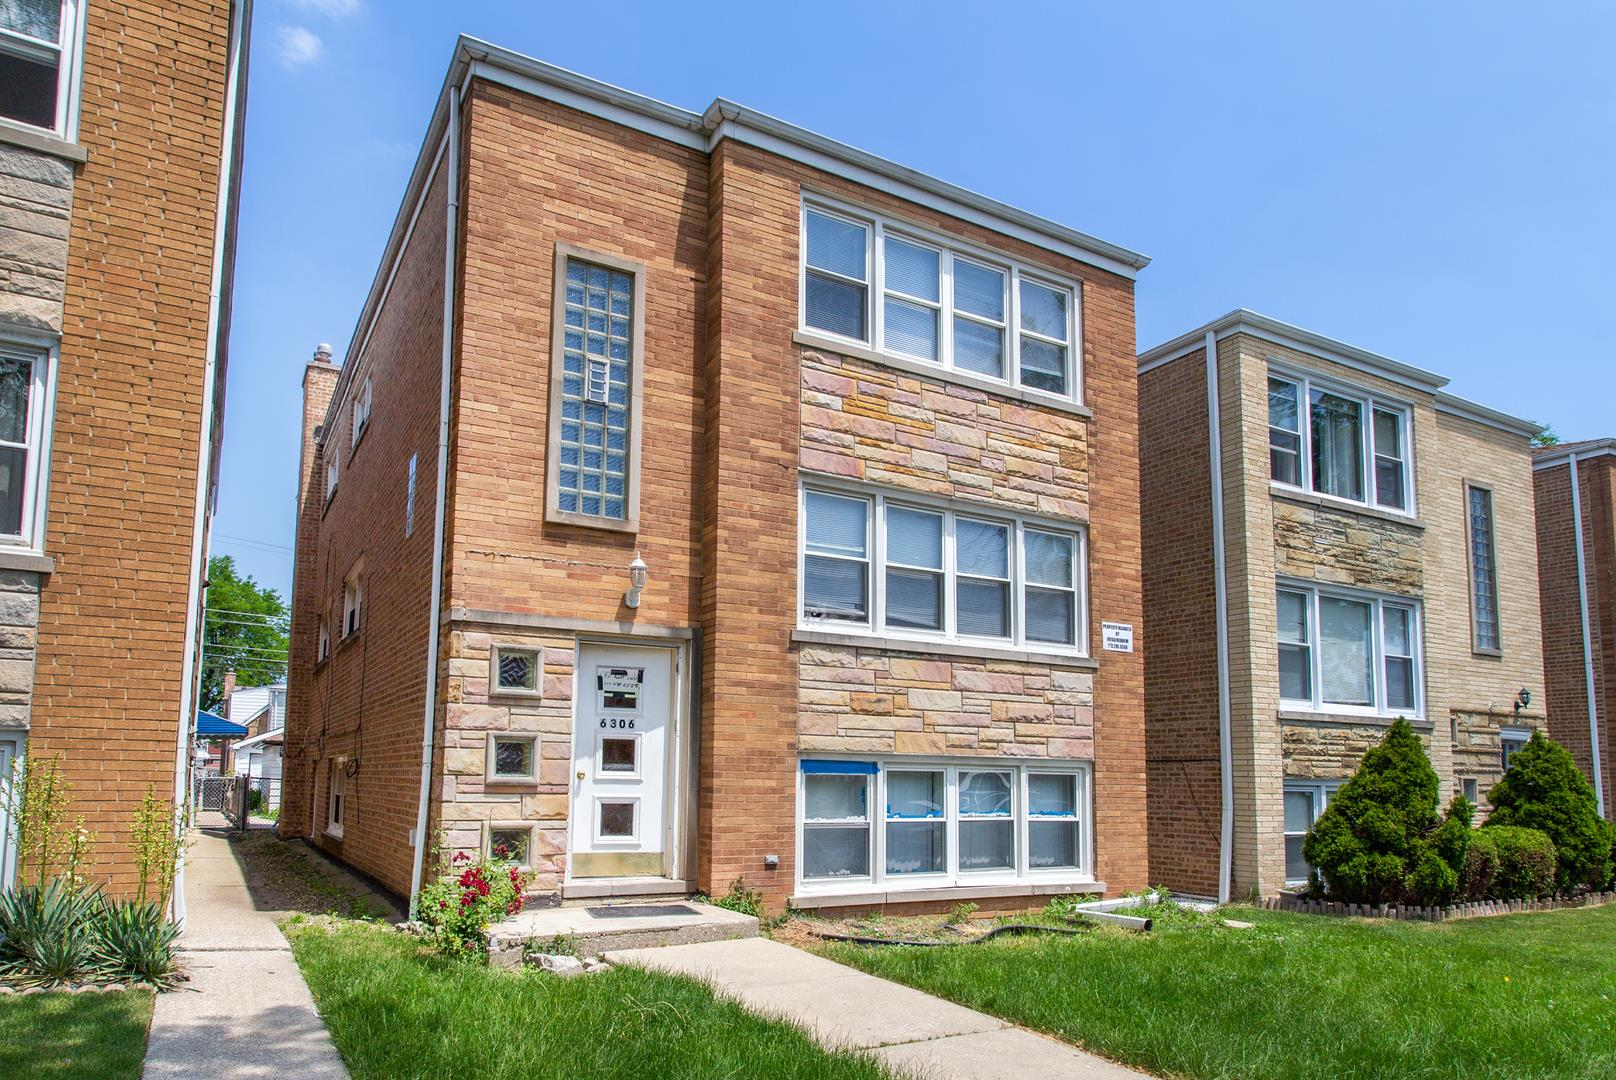 6306 W Belmont Avenue, Chicago, IL 60634 - #: 10882711